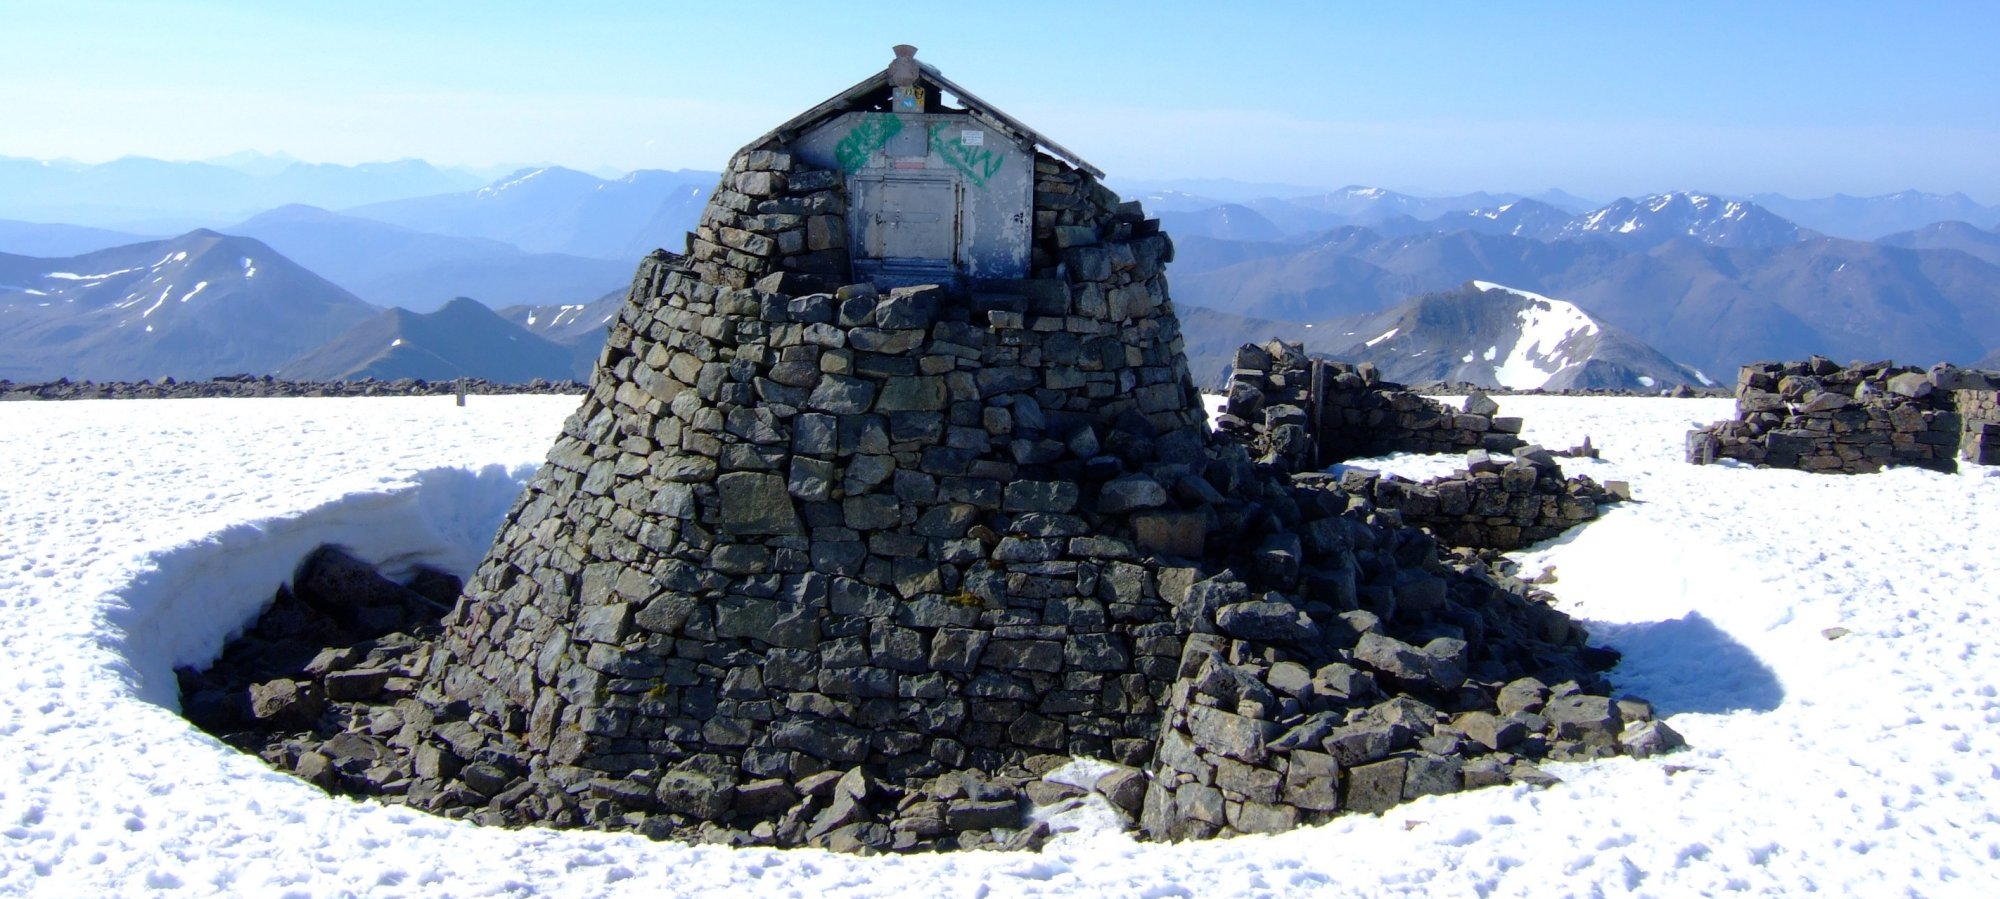 The summit shelter, formed from the remains of the Observatory